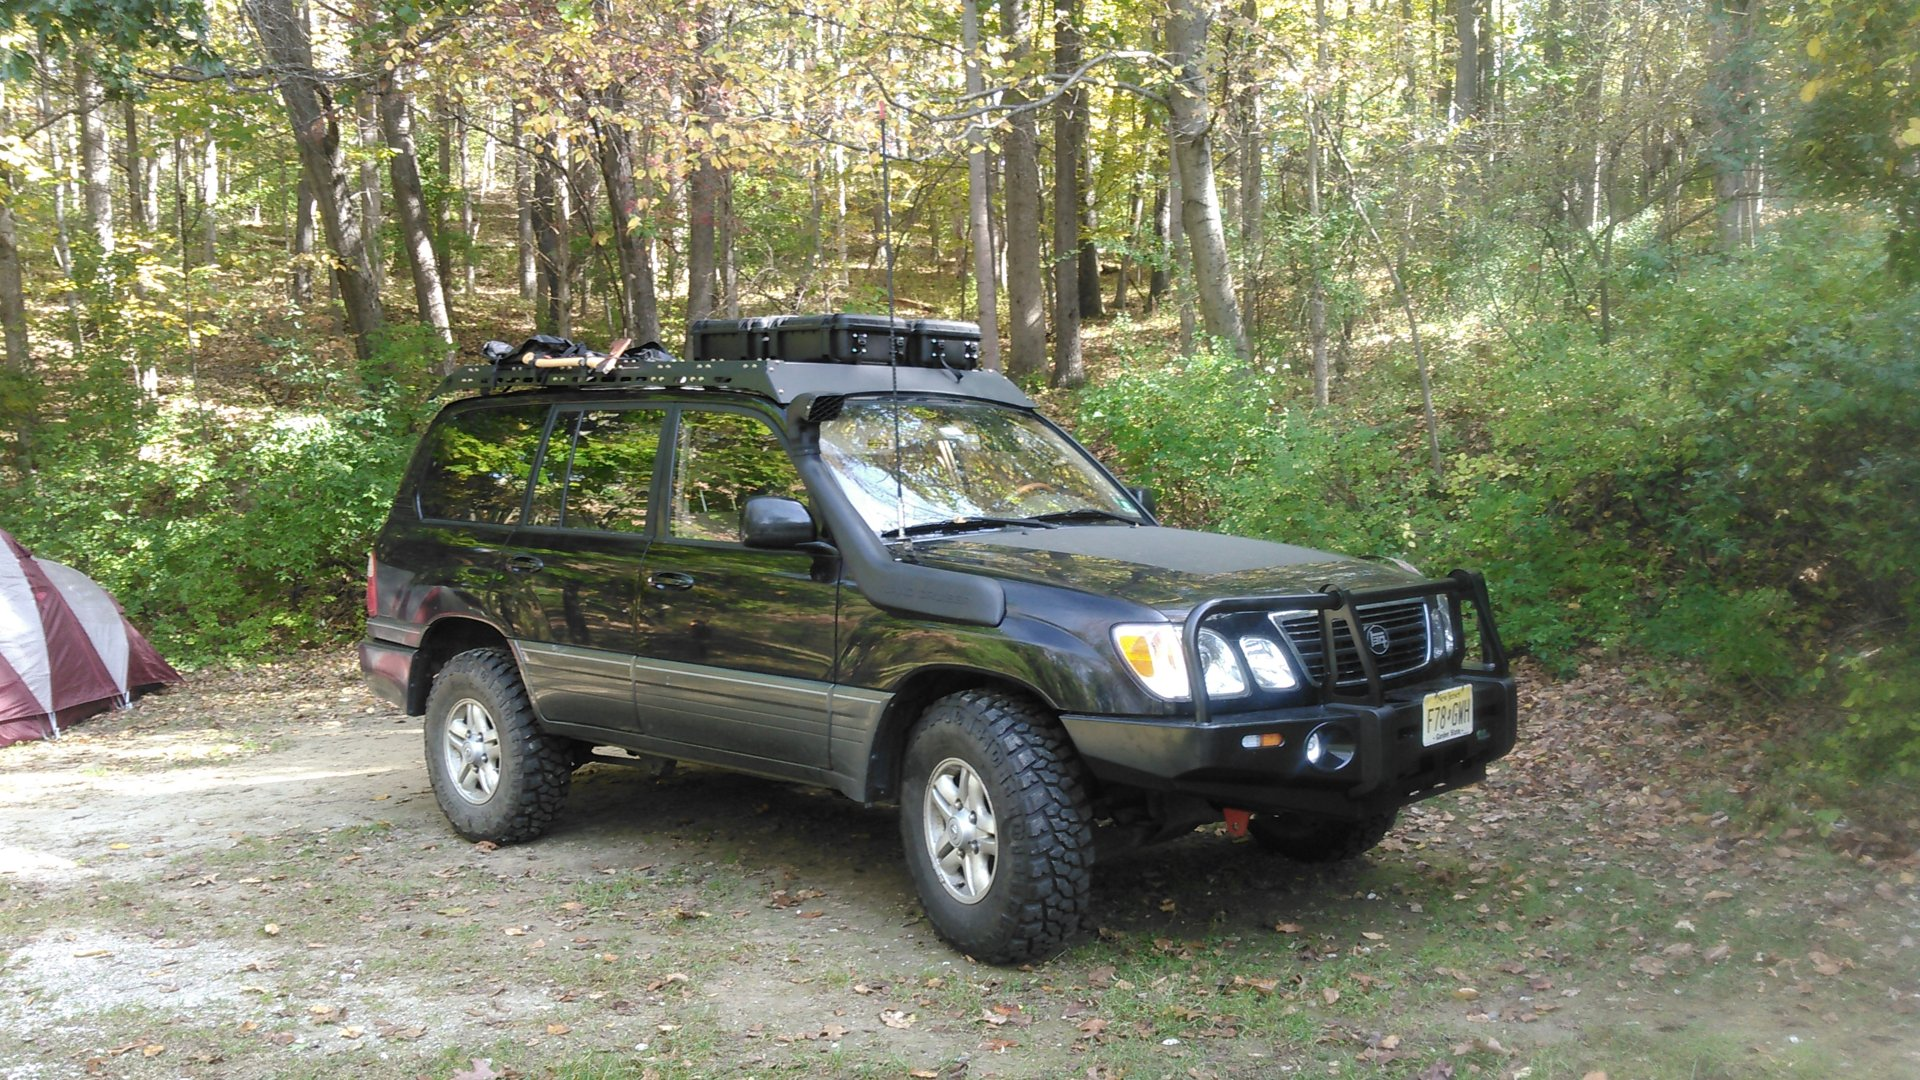 Dissent Offroad Modular Aluminum Roof Rack Page 5